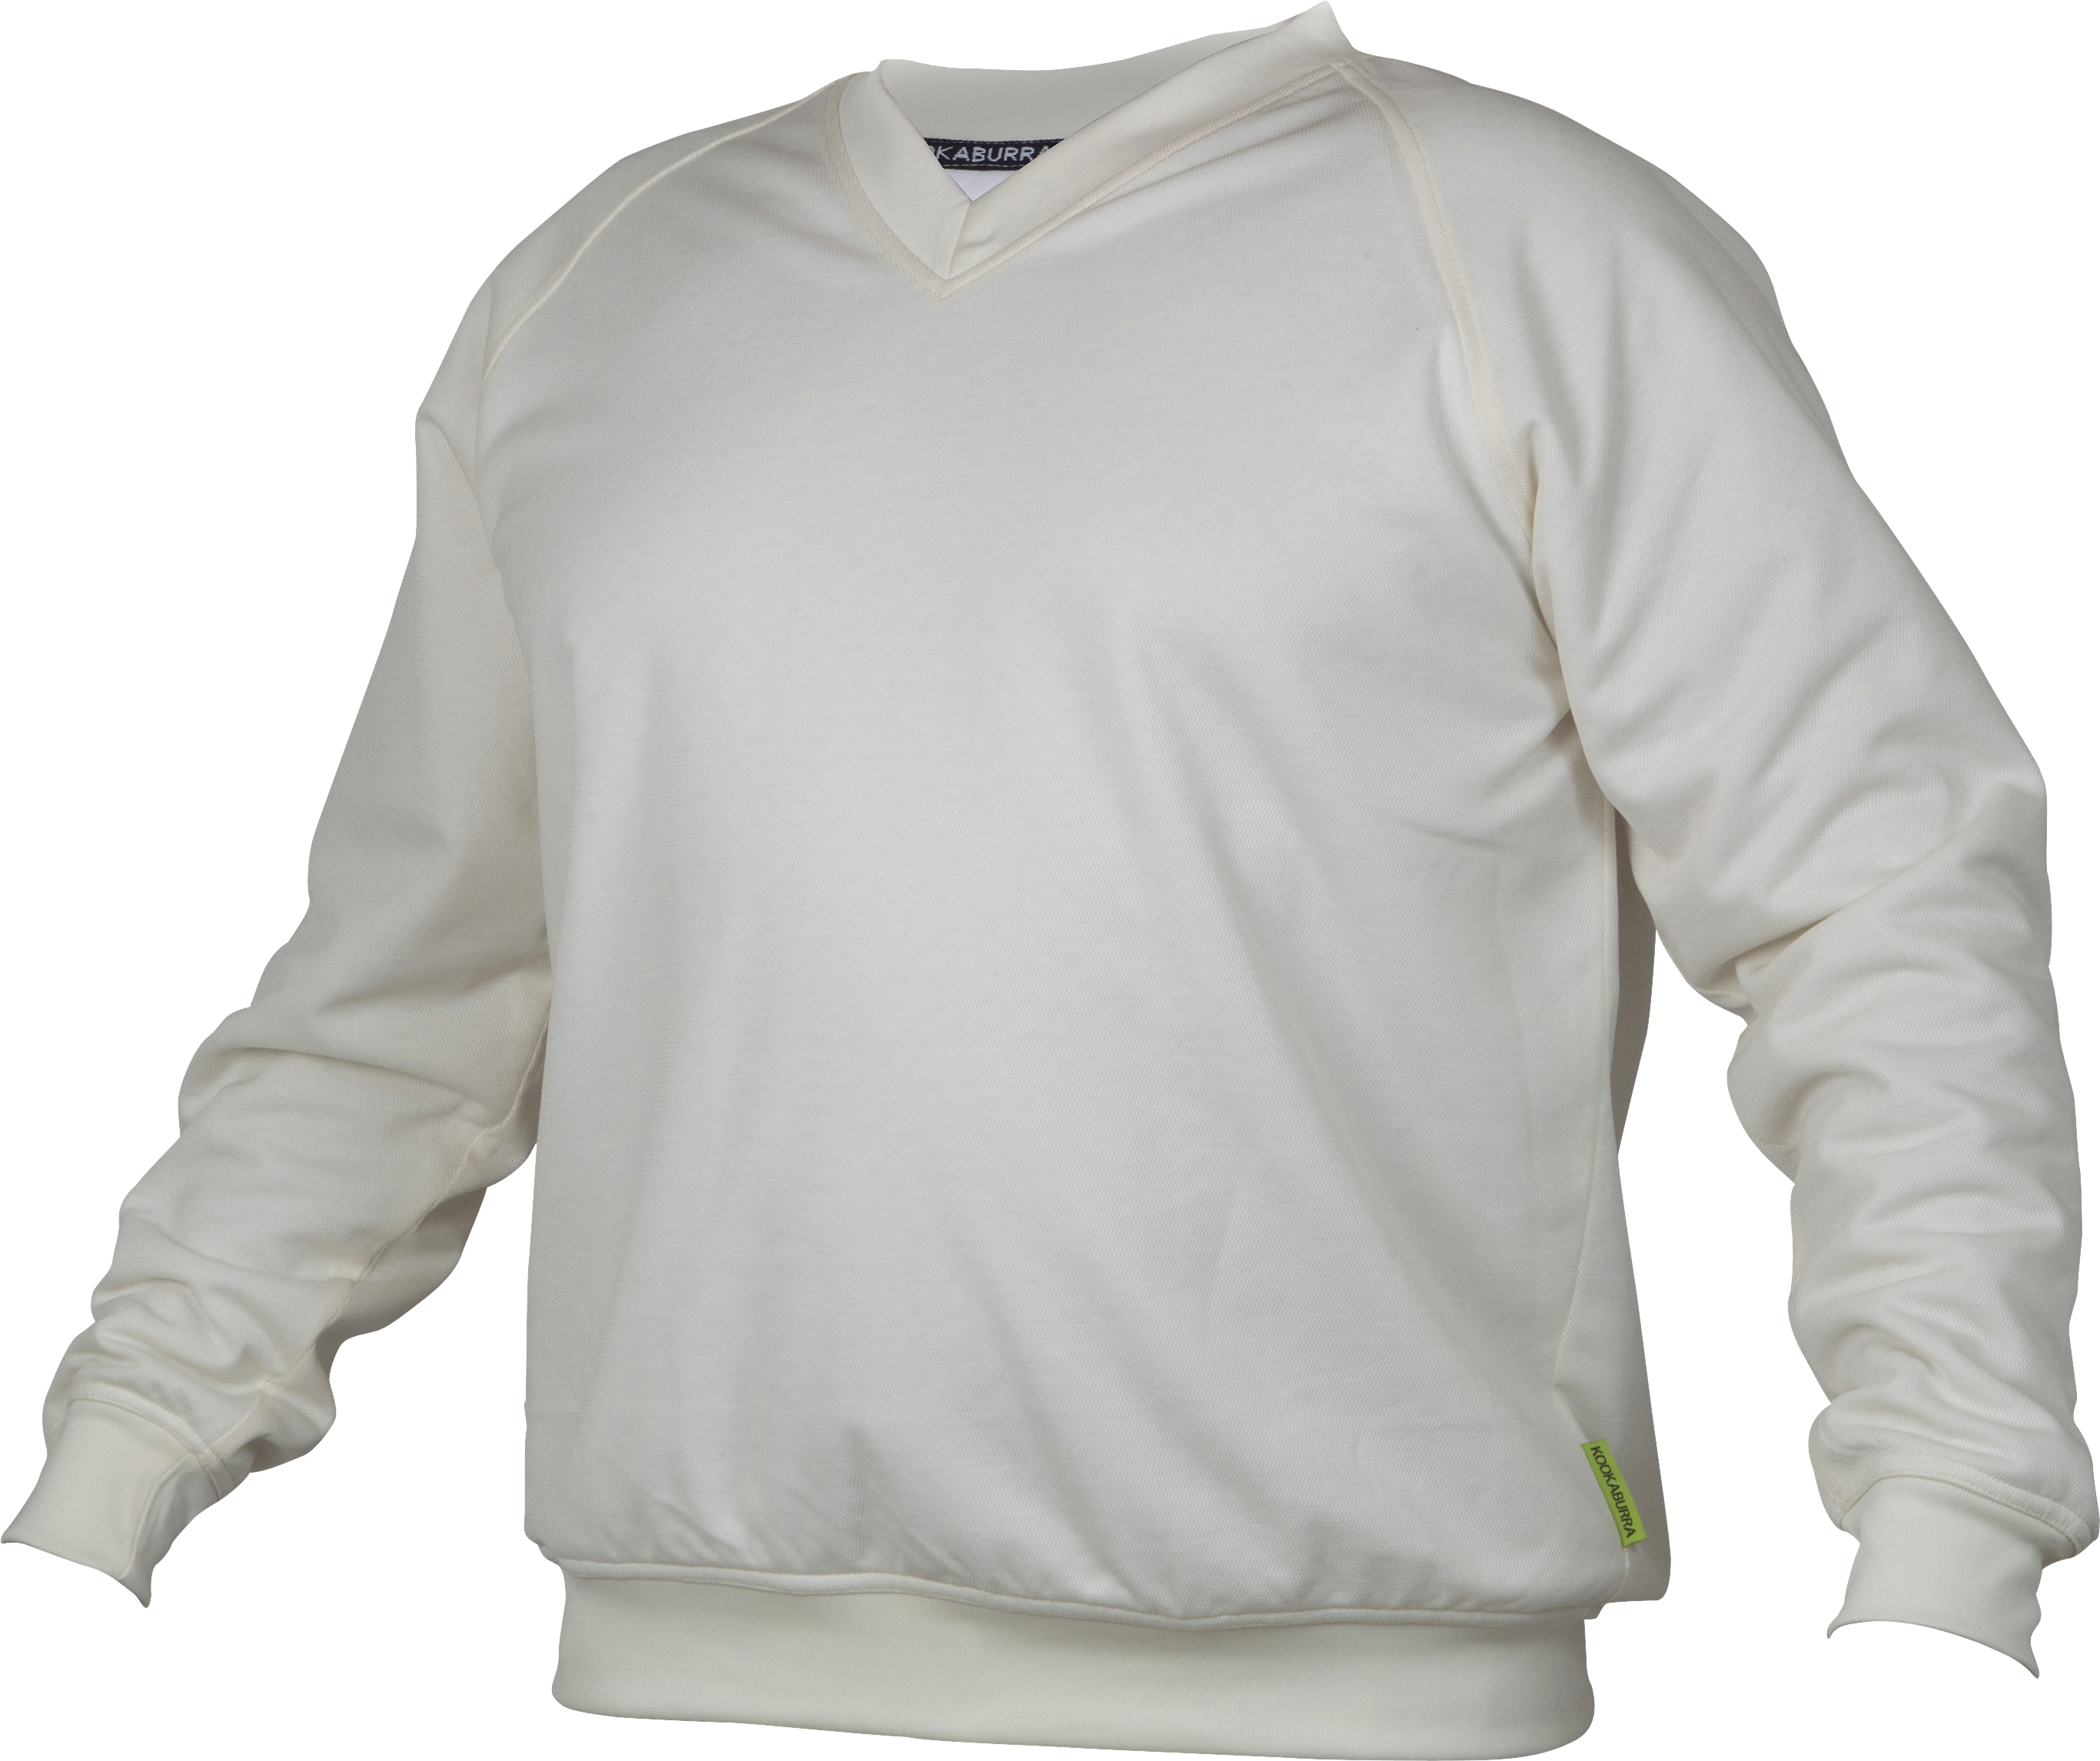 PNG Sweater Transparent Sweater.PNG Images. | PlusPNG